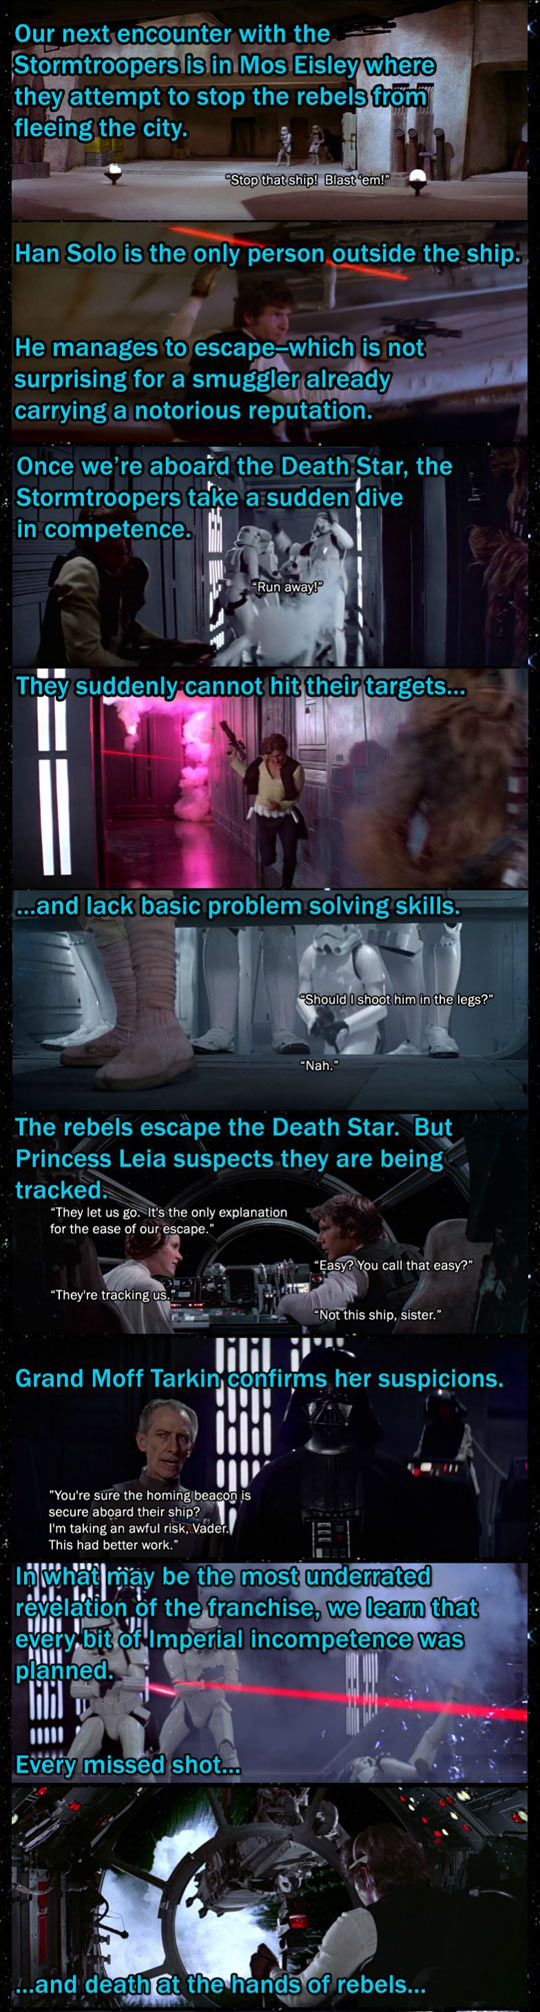 funny-Stormtroopers-why-miss-hit-rebels